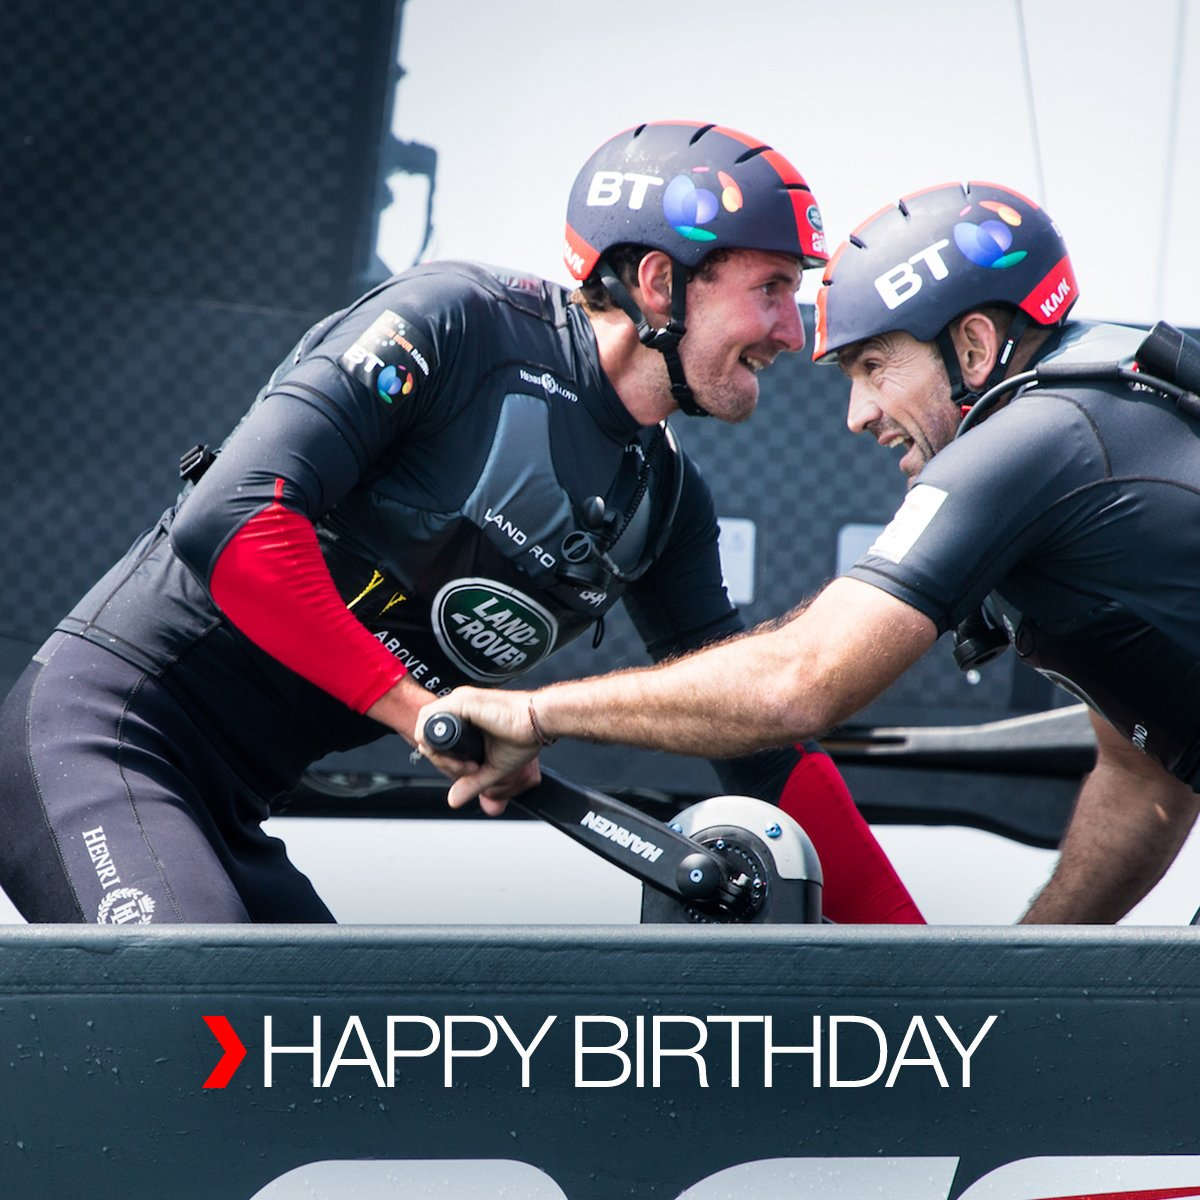 LandRoverBAR photo